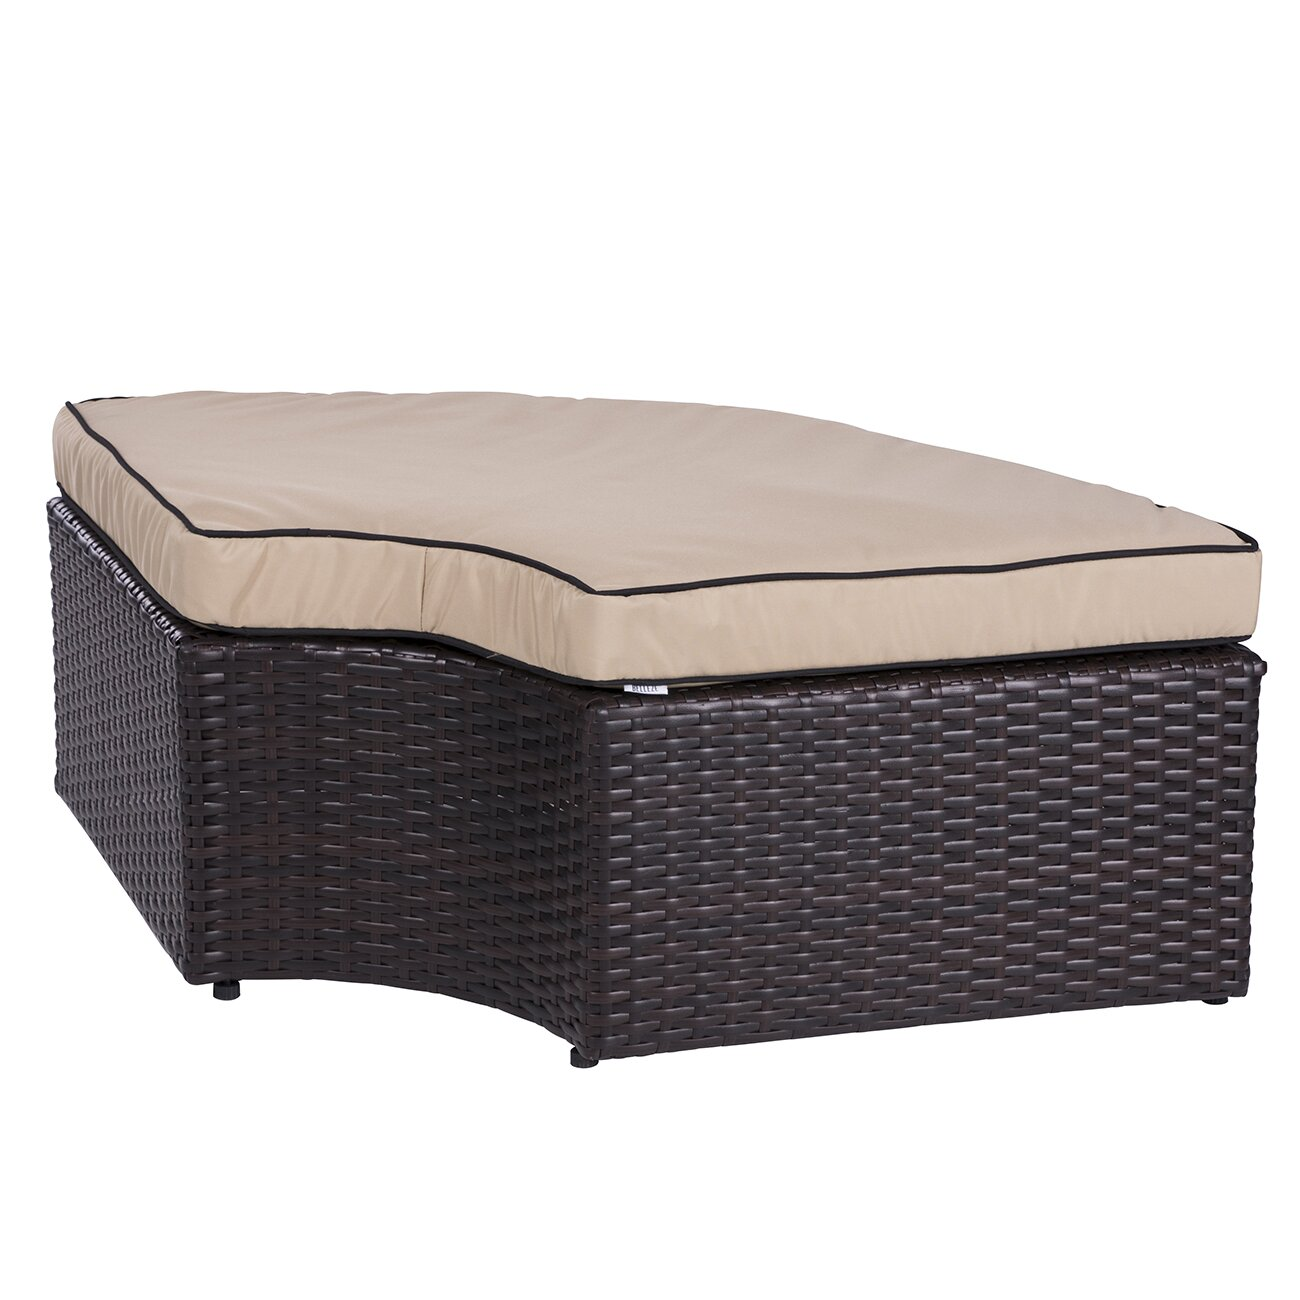 Belleze 5 Piece Outdoor Daybed Set with Cushions & Reviews